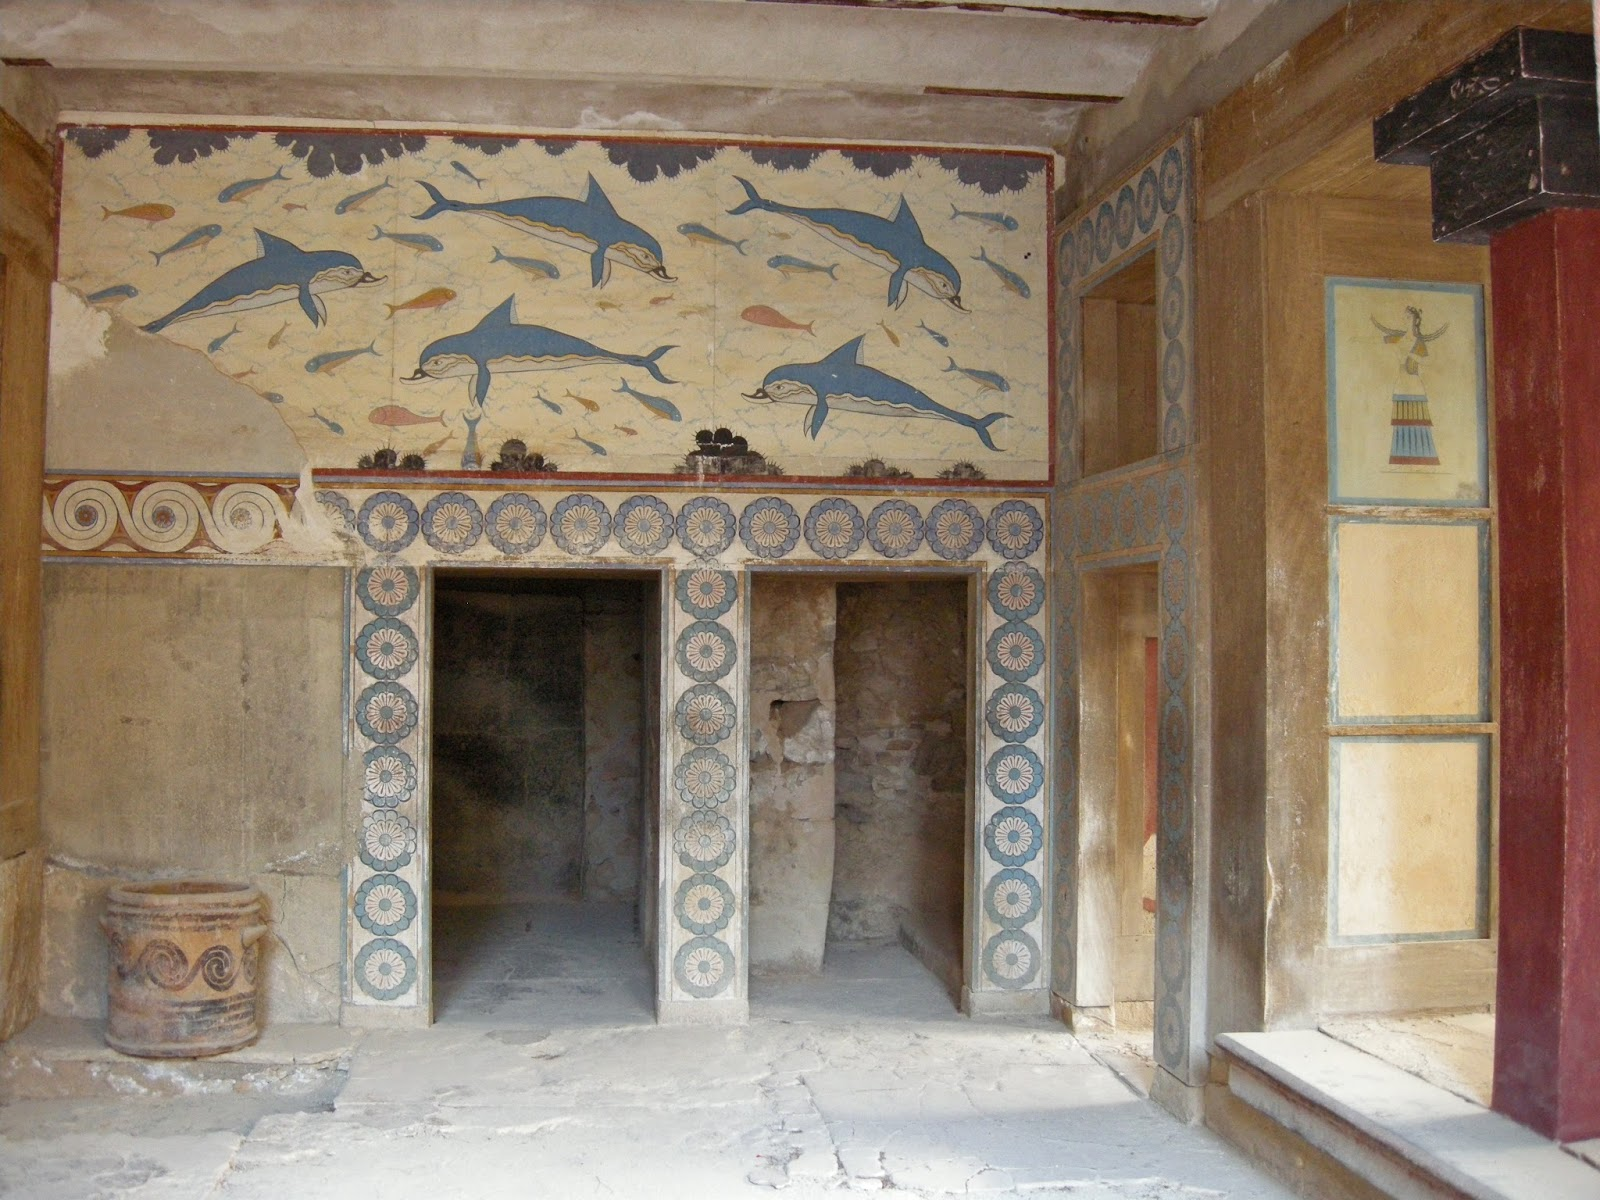 Bike classical journey to ancient knossos crete for Dolphin mural knossos